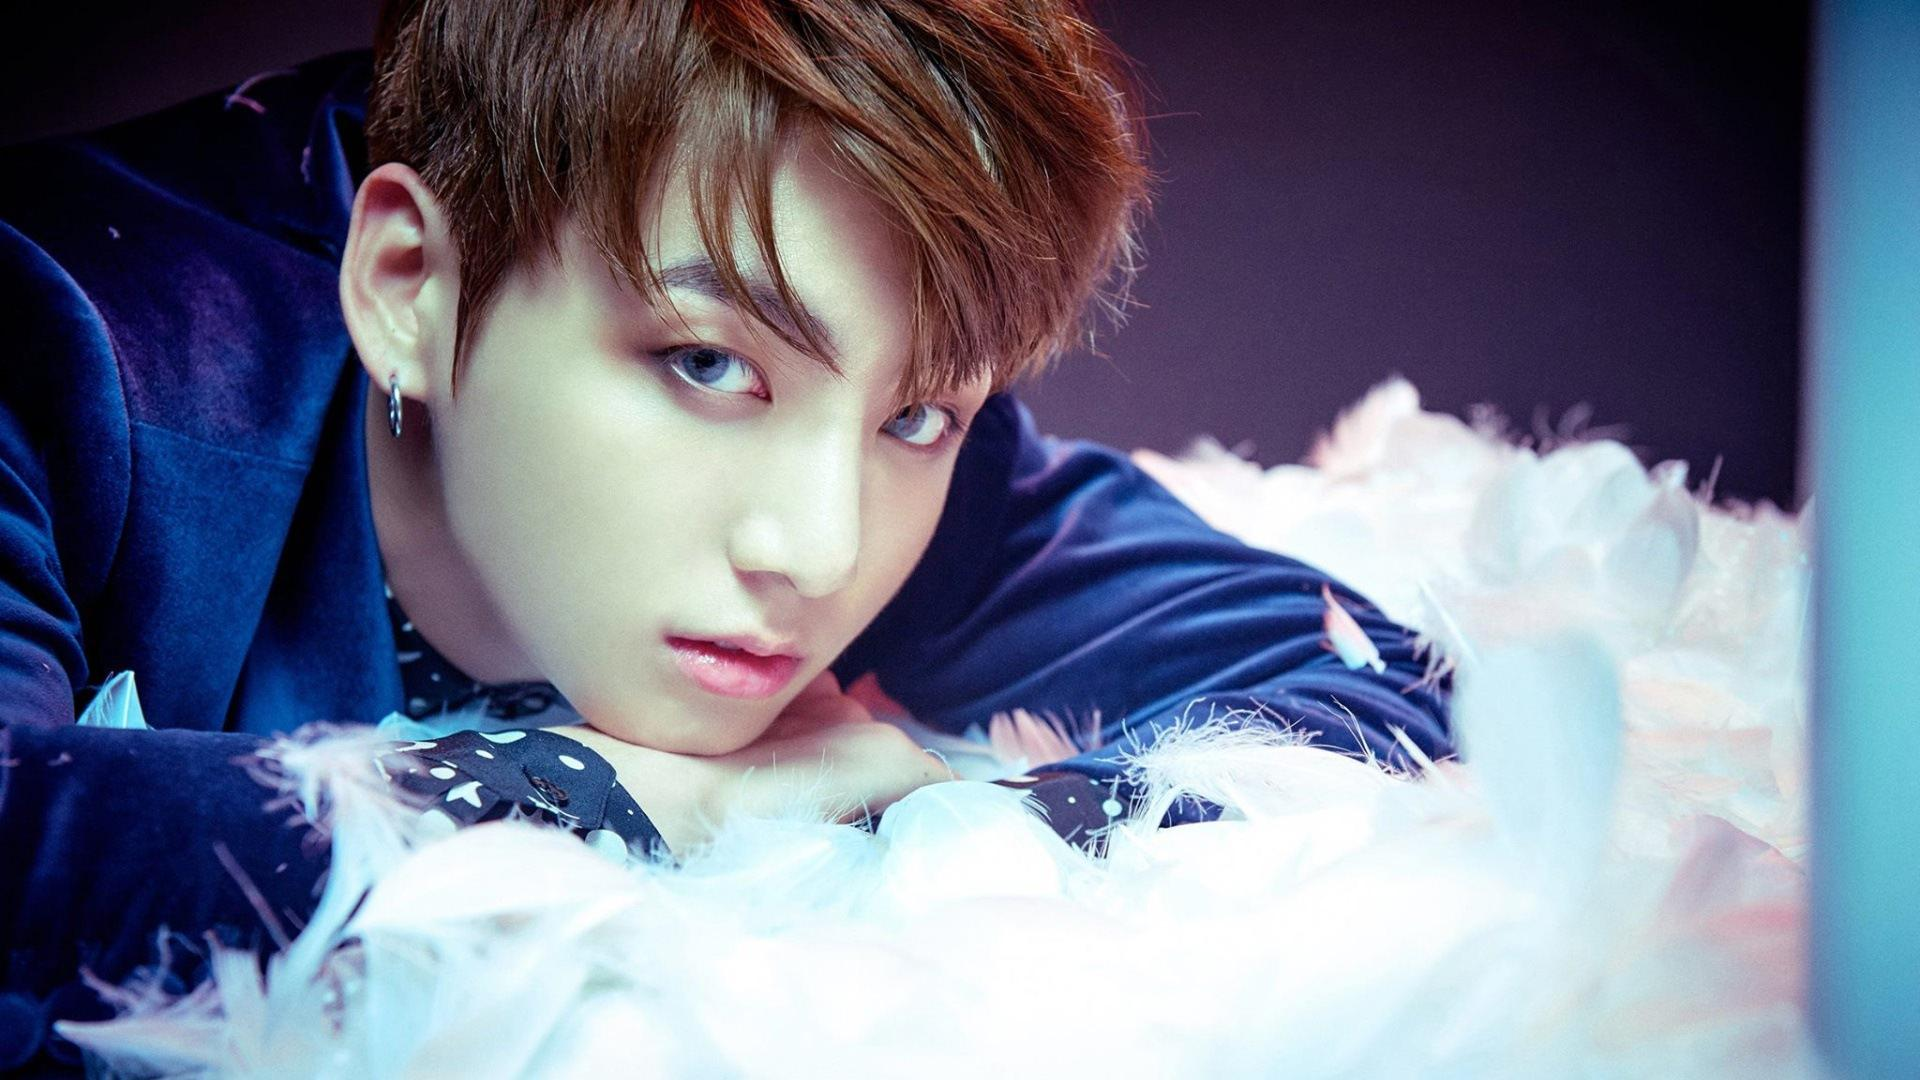 Jungkook BTS Member Wallpapers